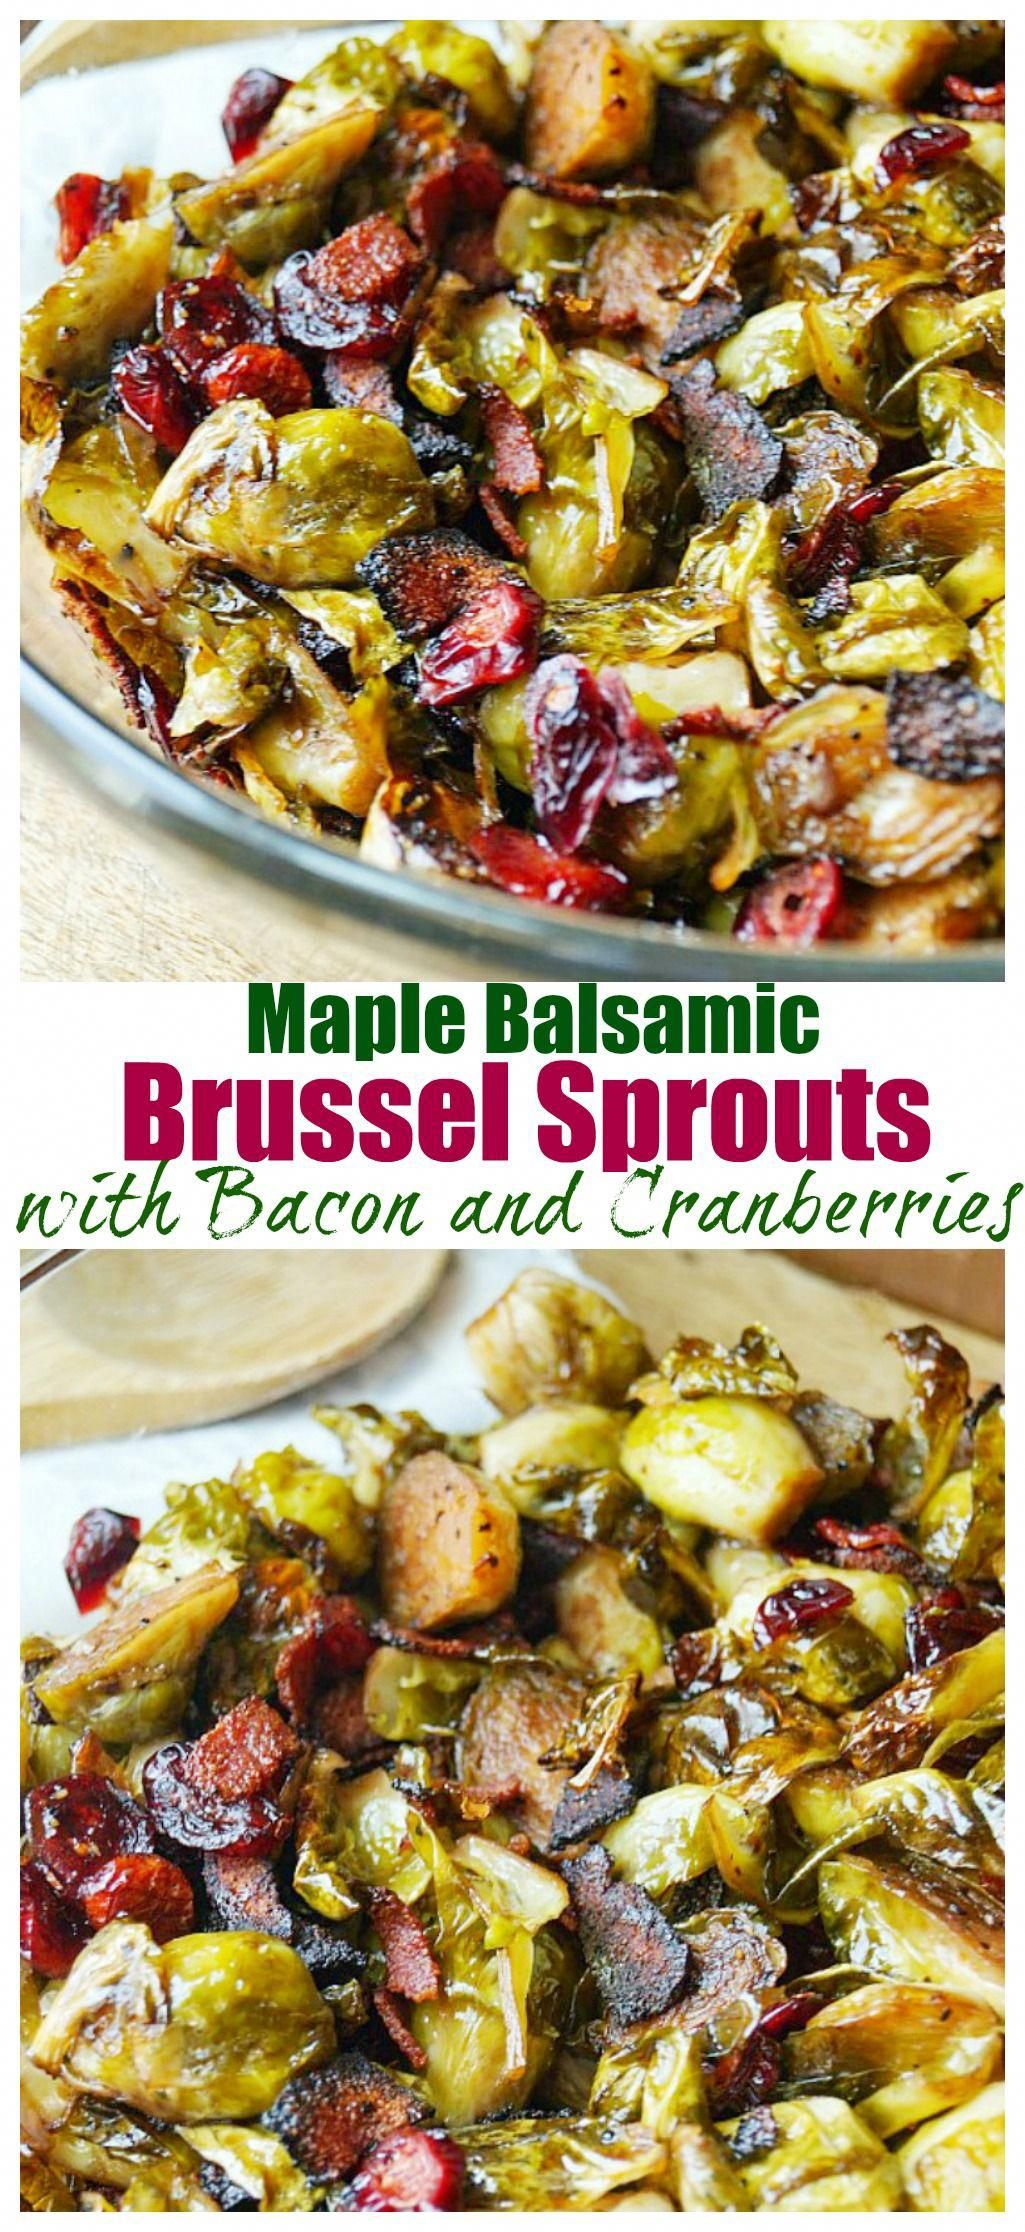 Maple Balsamic Roasted Brussel Sprouts with Bacon and Cranberries - Old House to New Home #brusselsproutrecipes